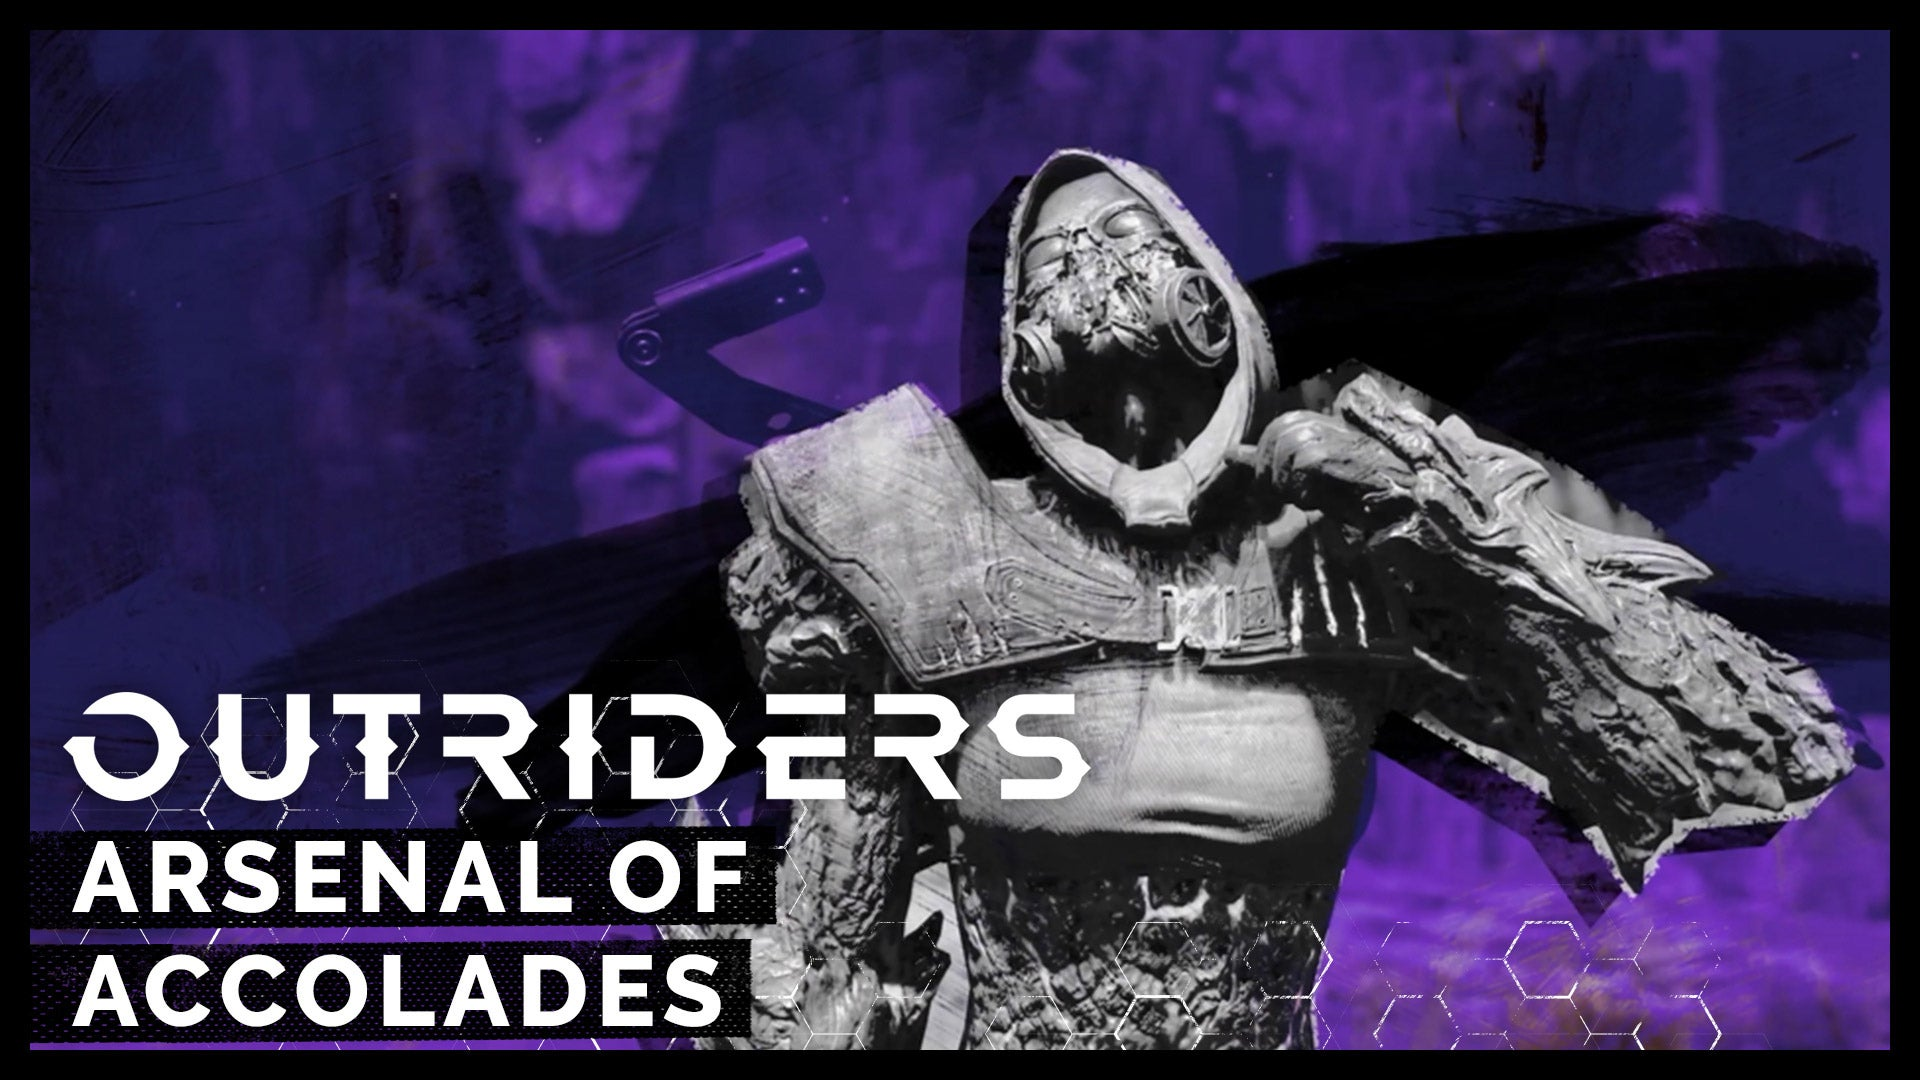 thumbnail for Outriders: Arsenal of Accolades